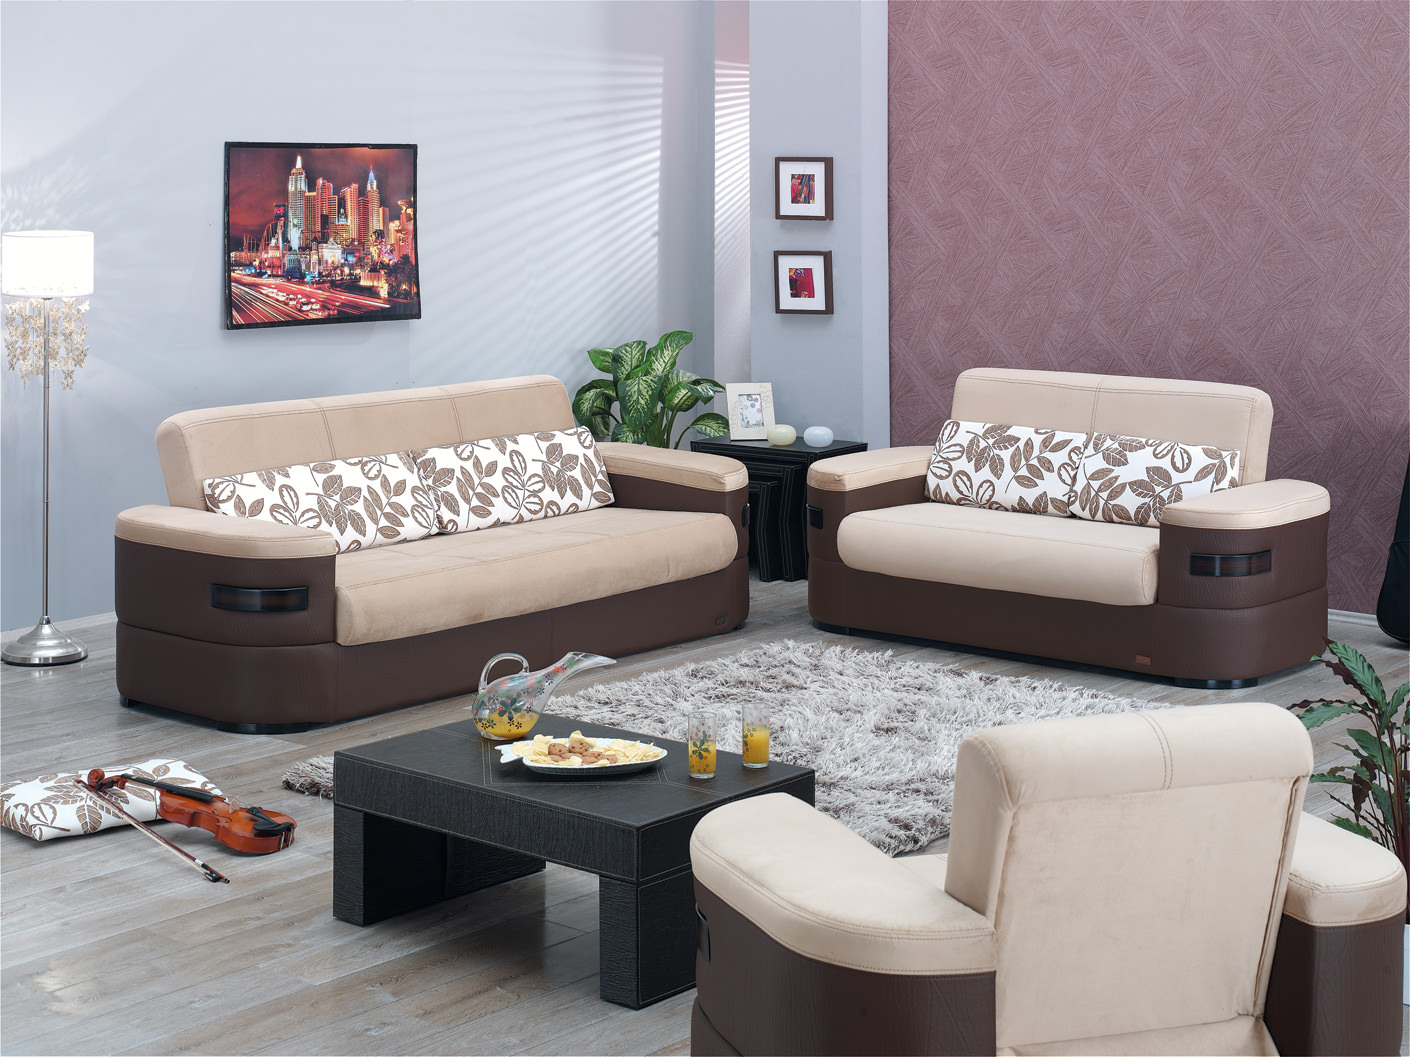 Couches Las Cheap Vegas